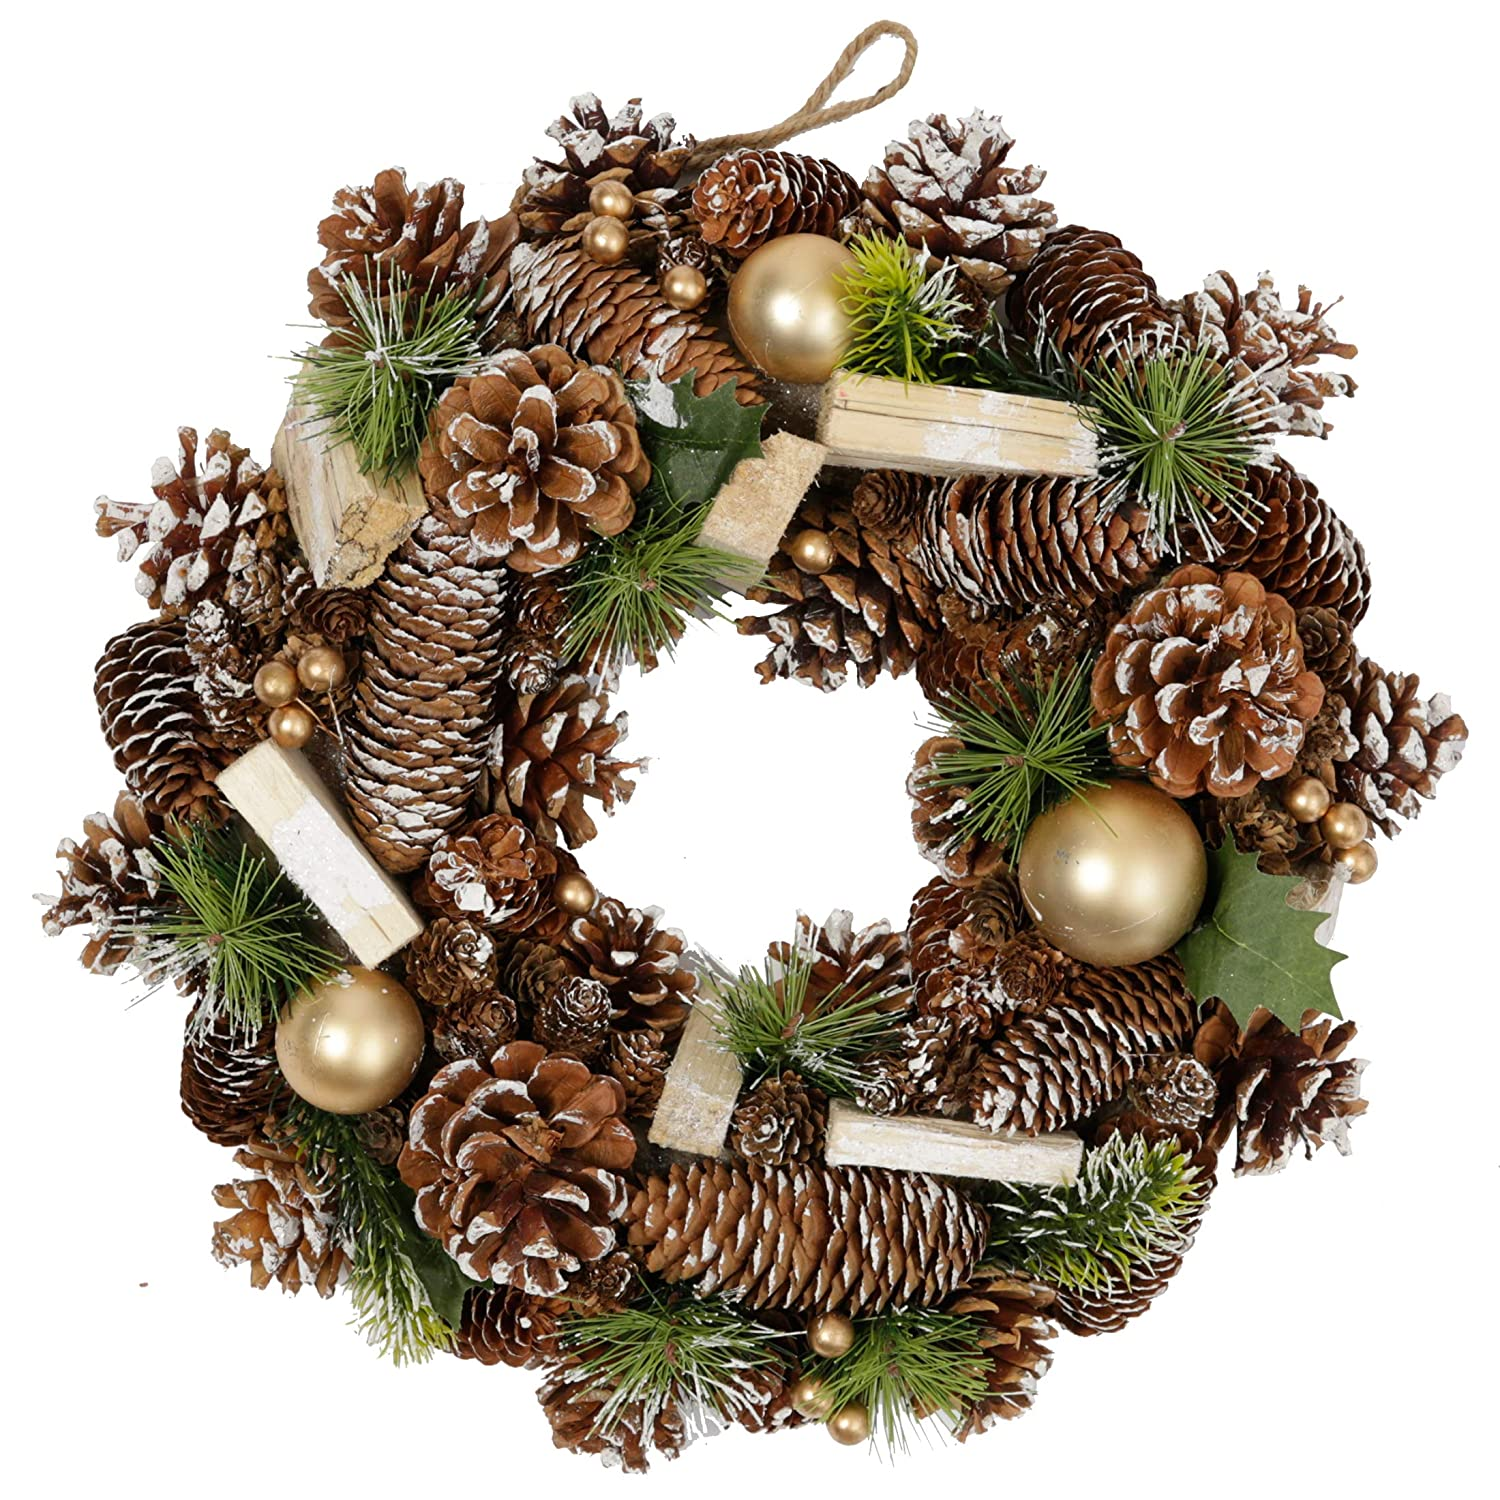 14in Olsen /& Smith 36cm Decorative Traditional Indoor Xmas Christmas Wreath with Gold Bauble Chopped Wood /& Pine Cone Decoration